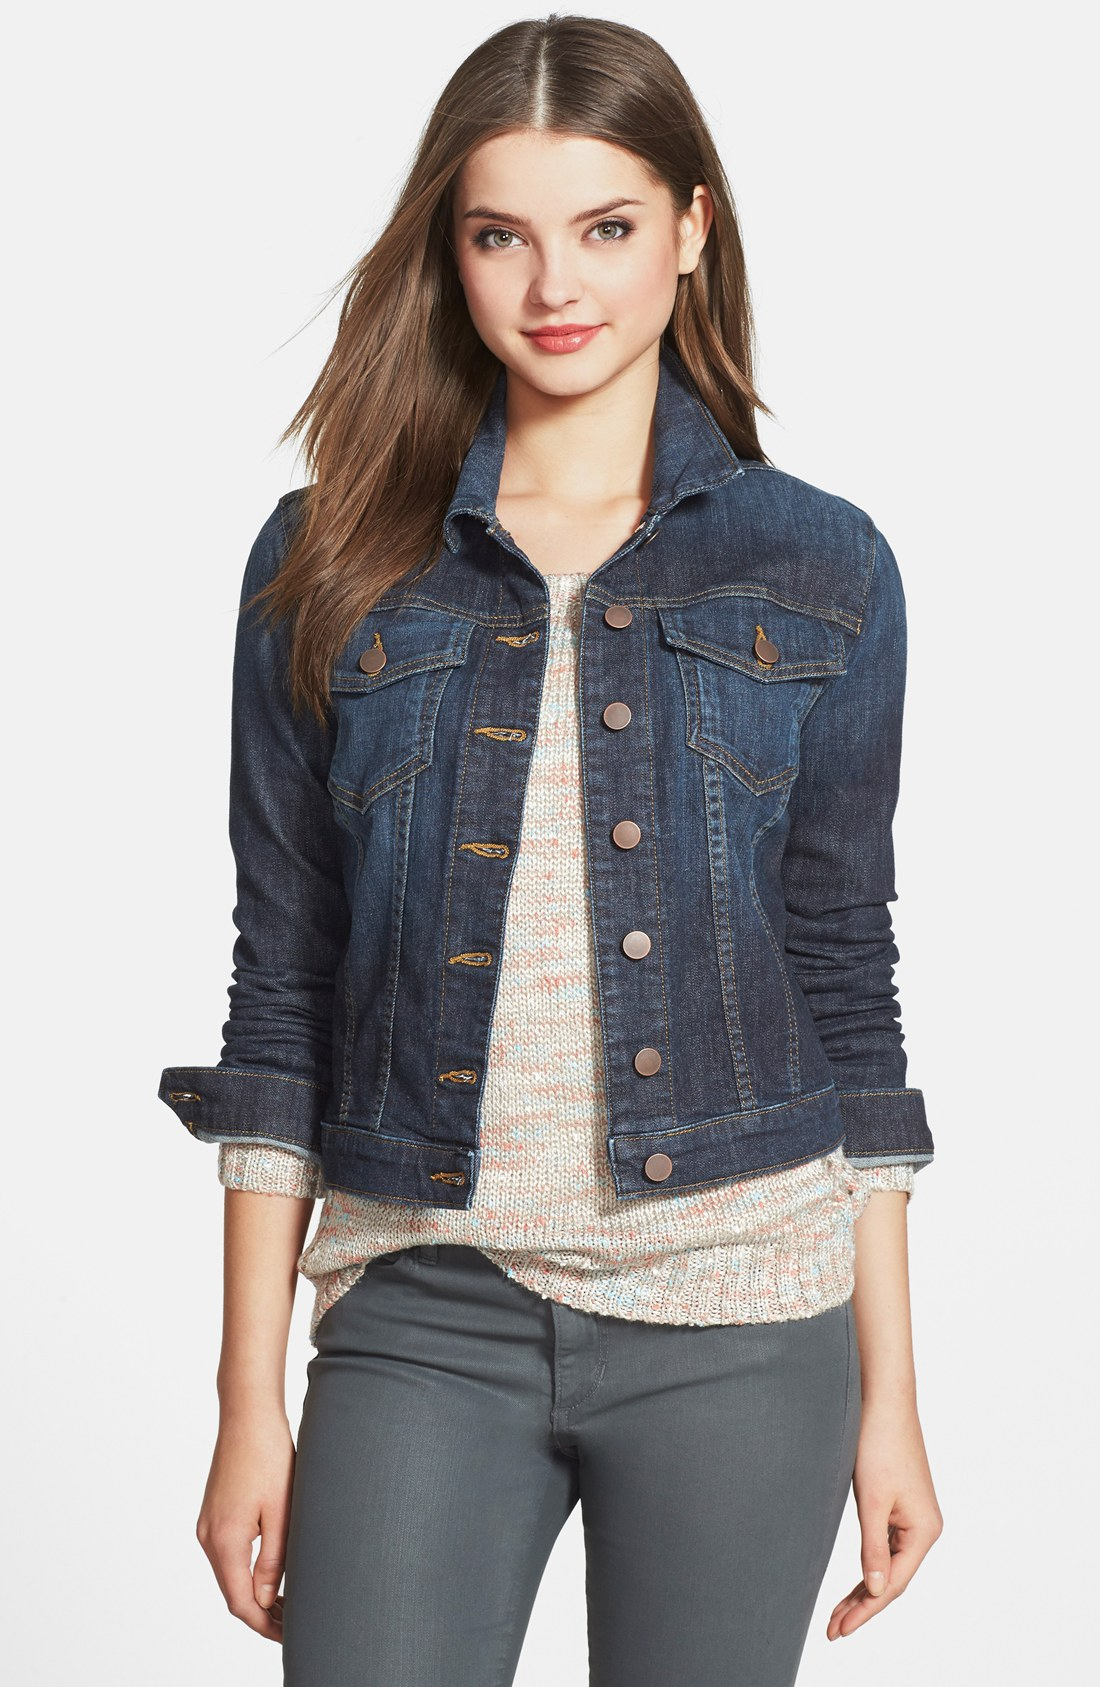 Tractr Jeans Womens Jackets & Vests Jackets/Vests; Jackets/Vests. 5 Item(s) Show. per page. Sort By. New. Tractr Denim Pleather Contrast Motorcycle Jacket. $ New. Tractr Denim Jacket Tractr Indigo Denim Jacket With Interchangeable Collar. $ 5 Item(s).